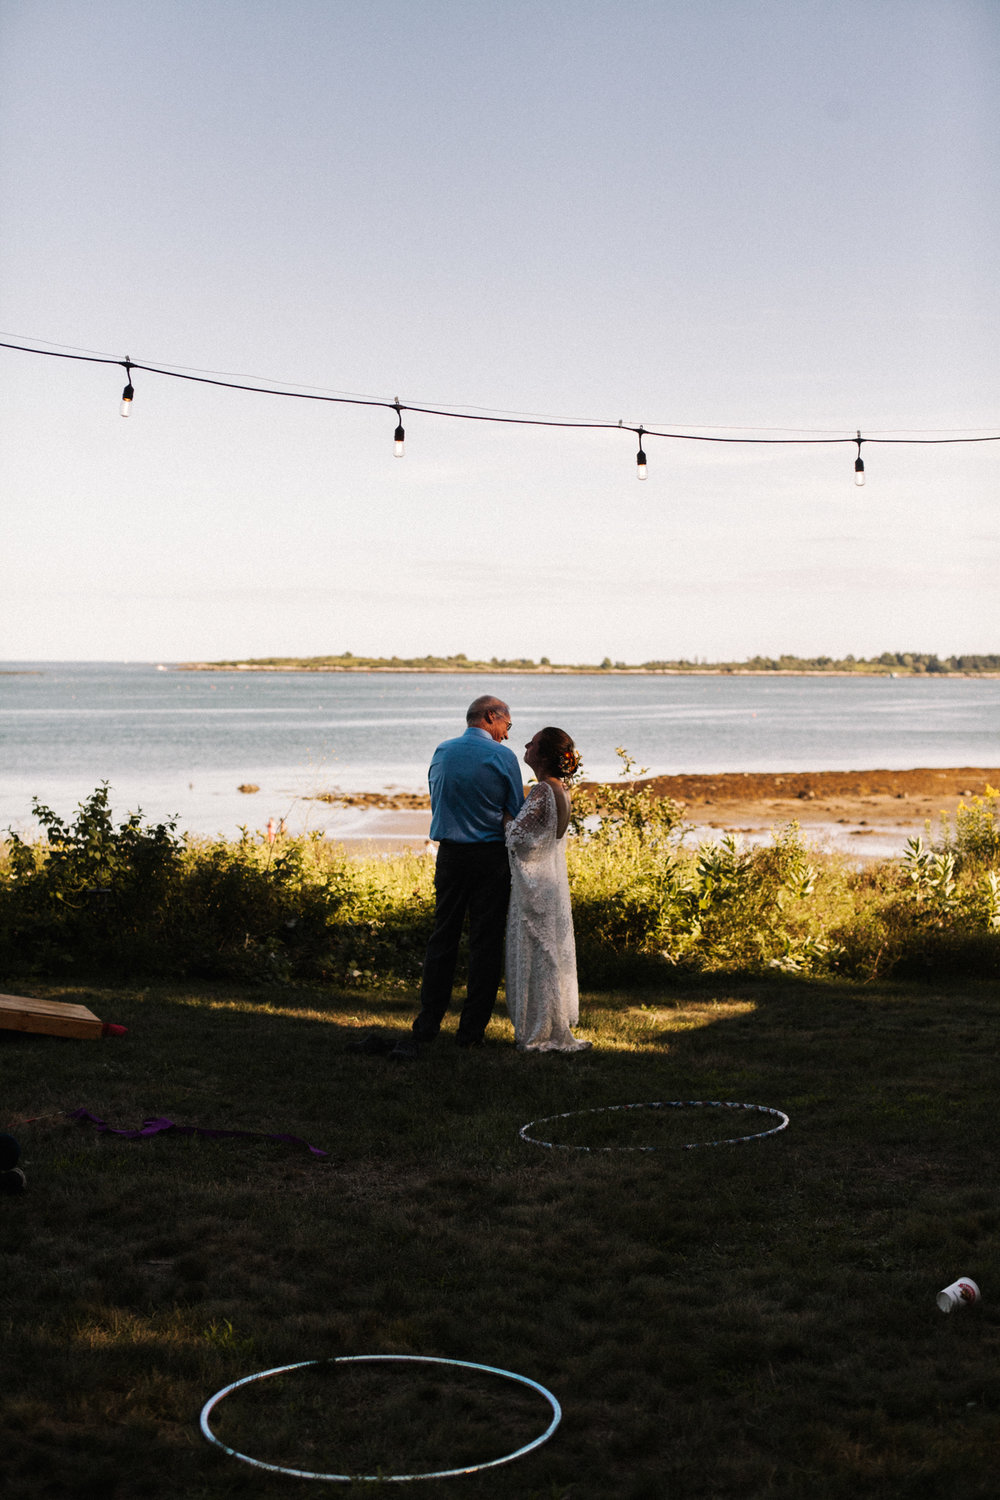 Damian and Jesse Chebeague Island Maine Backyard Destination Beach Wedding White Sails Creative_13.JPG